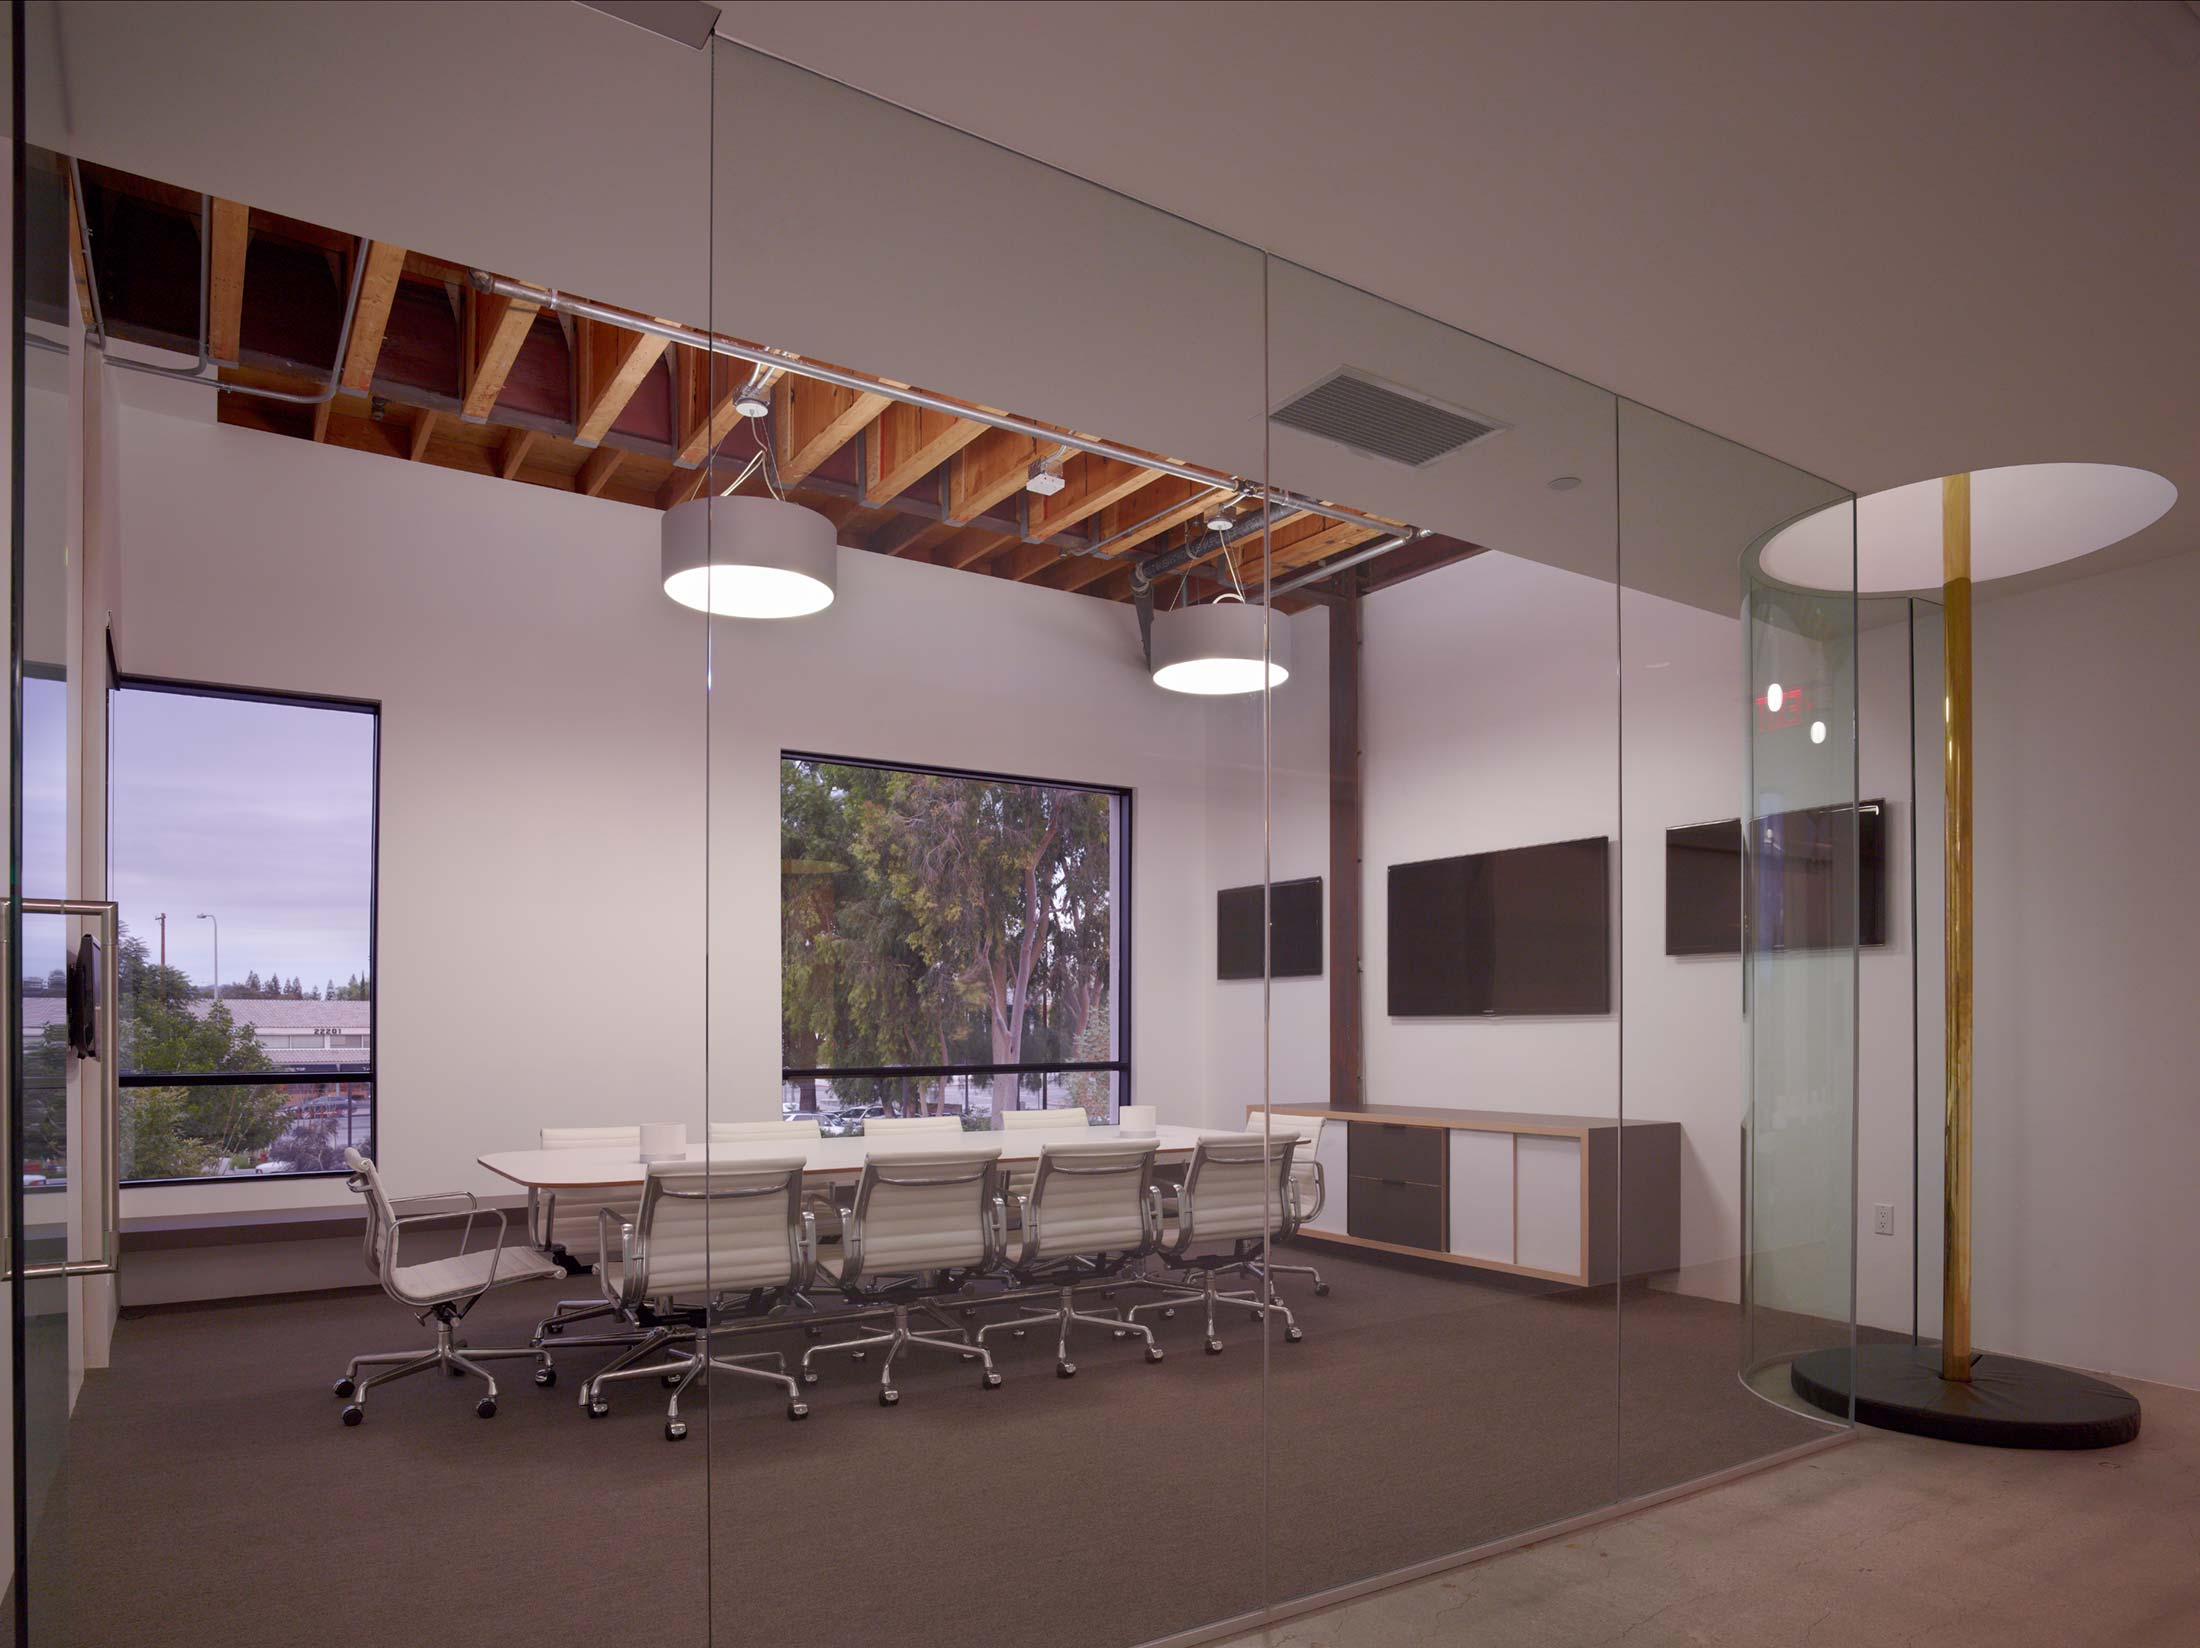 modern-architecture-commercial-interiors-workplace-office-custom-fabrication-sustainable-california-shubindonaldson-sierra-pacific-construction-02